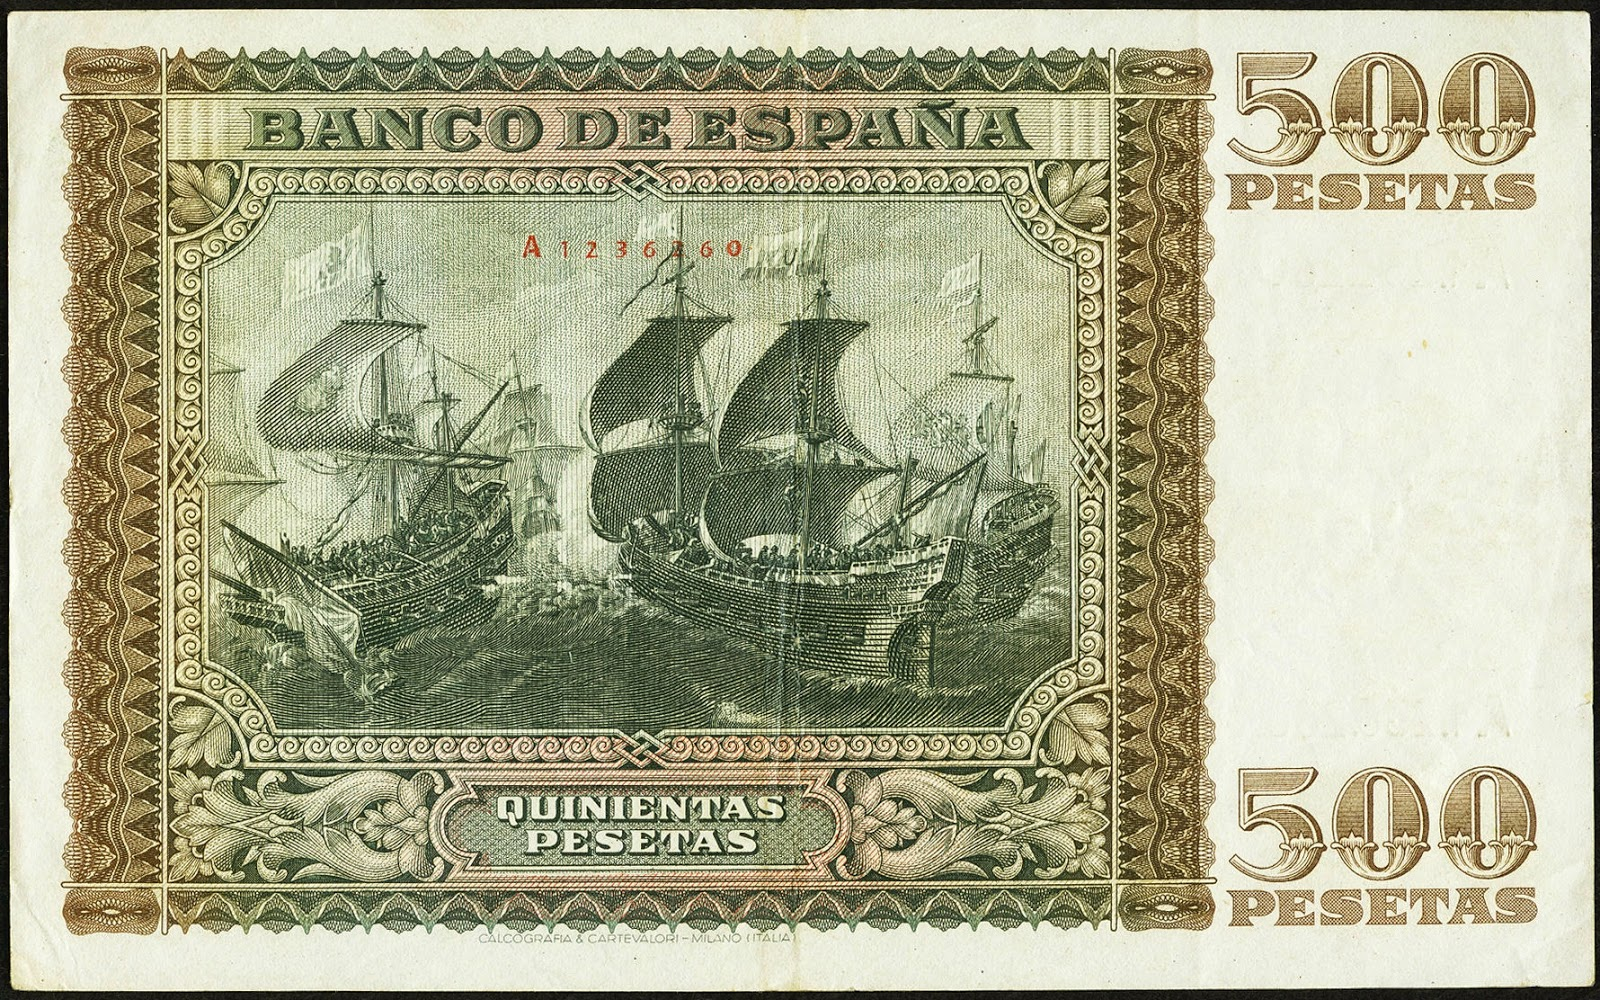 Spain money currency 500 Pesetas banknote 1940 The Battle of Lepanto